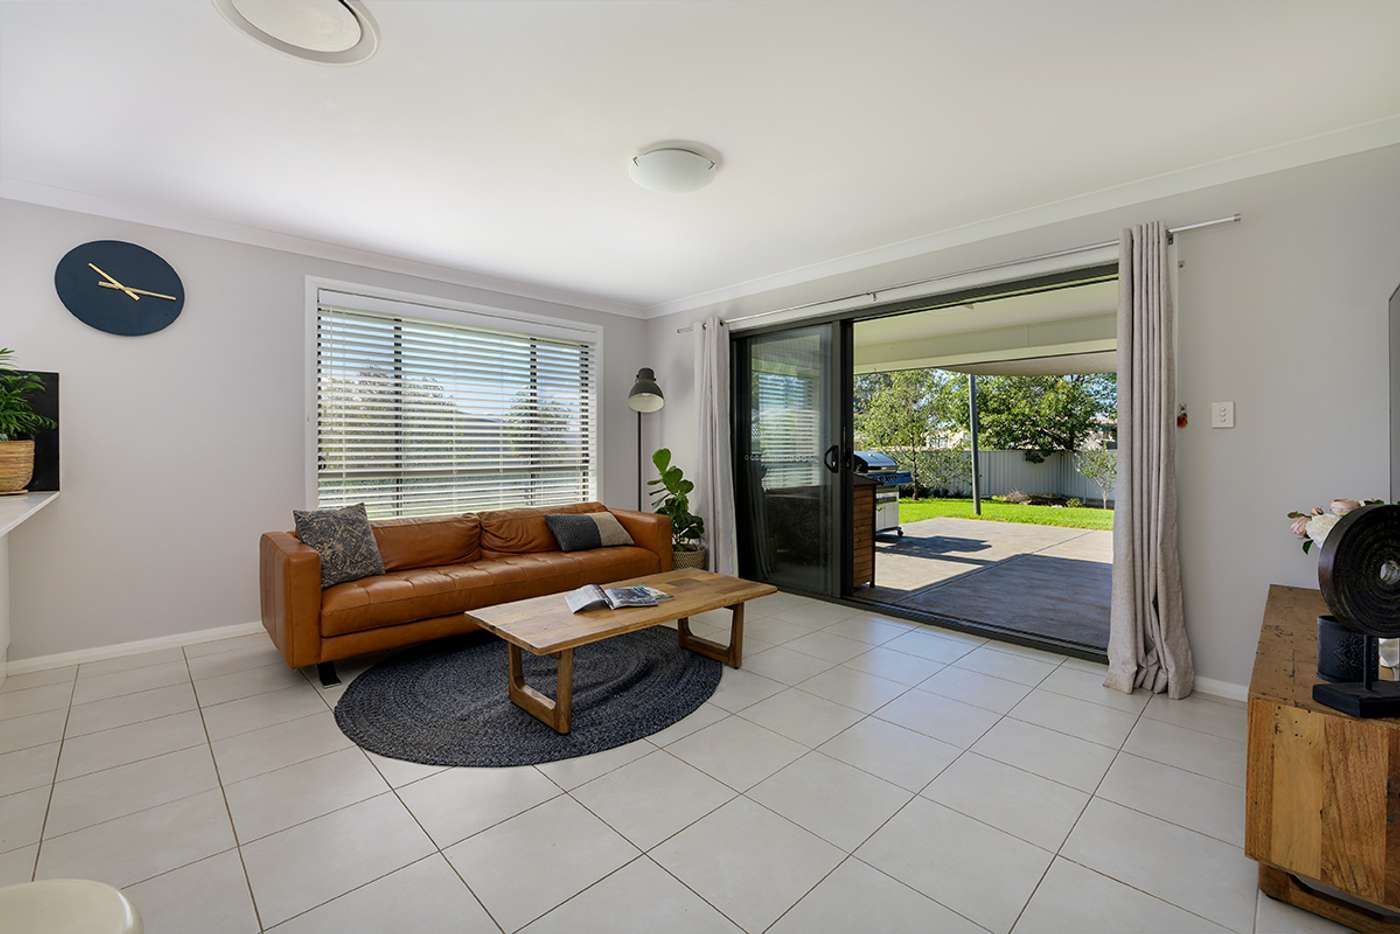 Sixth view of Homely house listing, 33A Kellett Drive, Mudgee NSW 2850